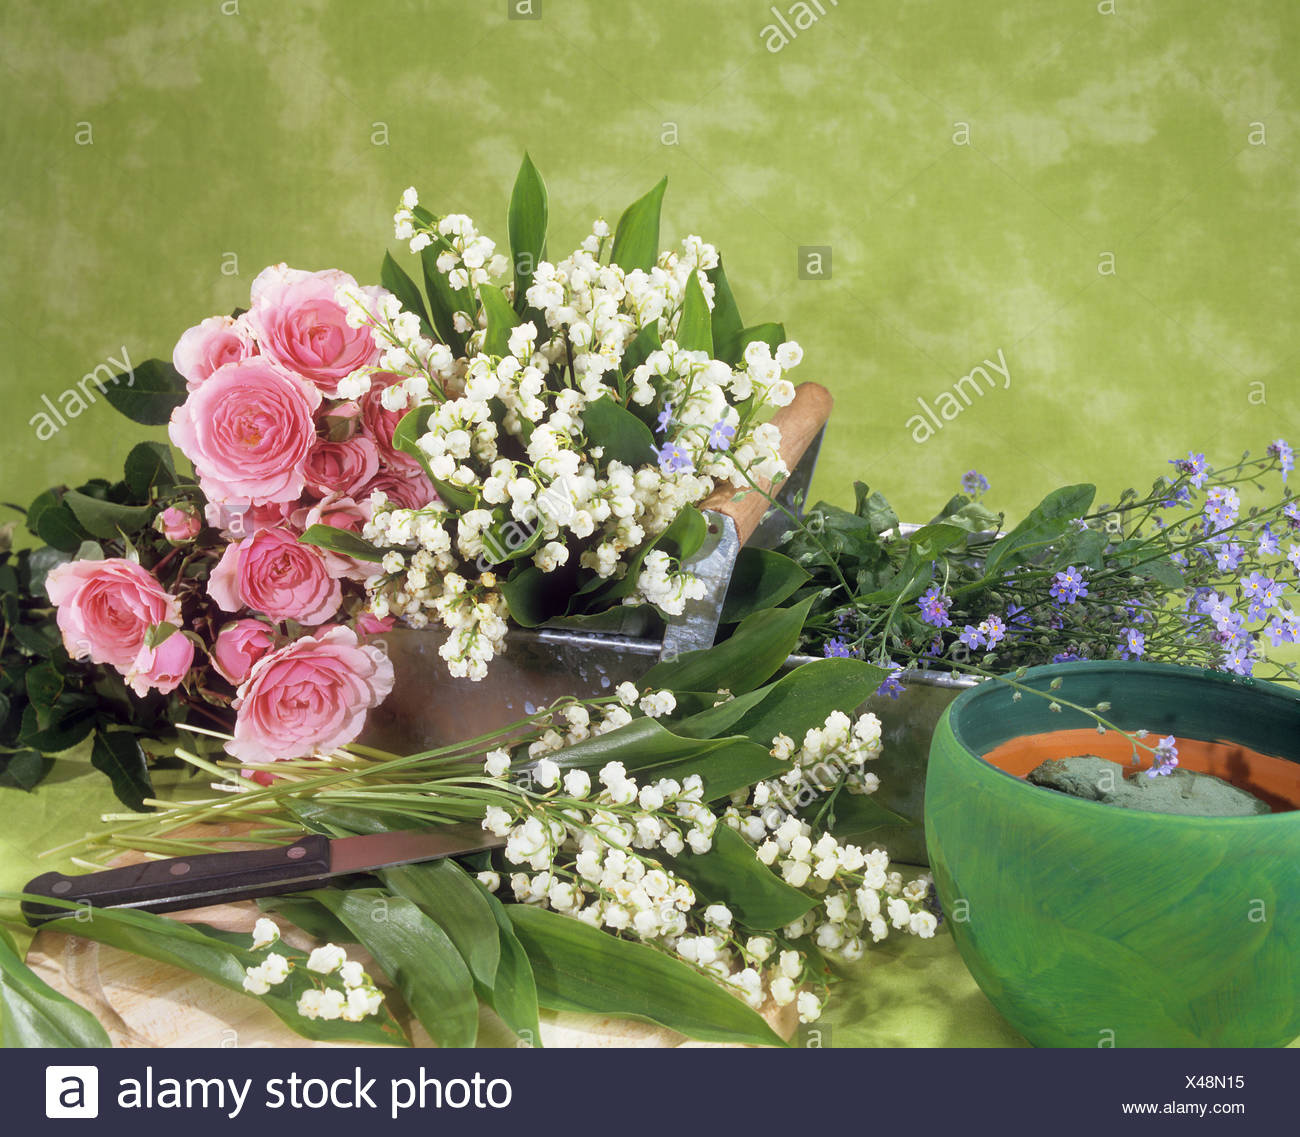 Different lilies stock photos different lilies stock images alamy different flowers stock image izmirmasajfo Image collections